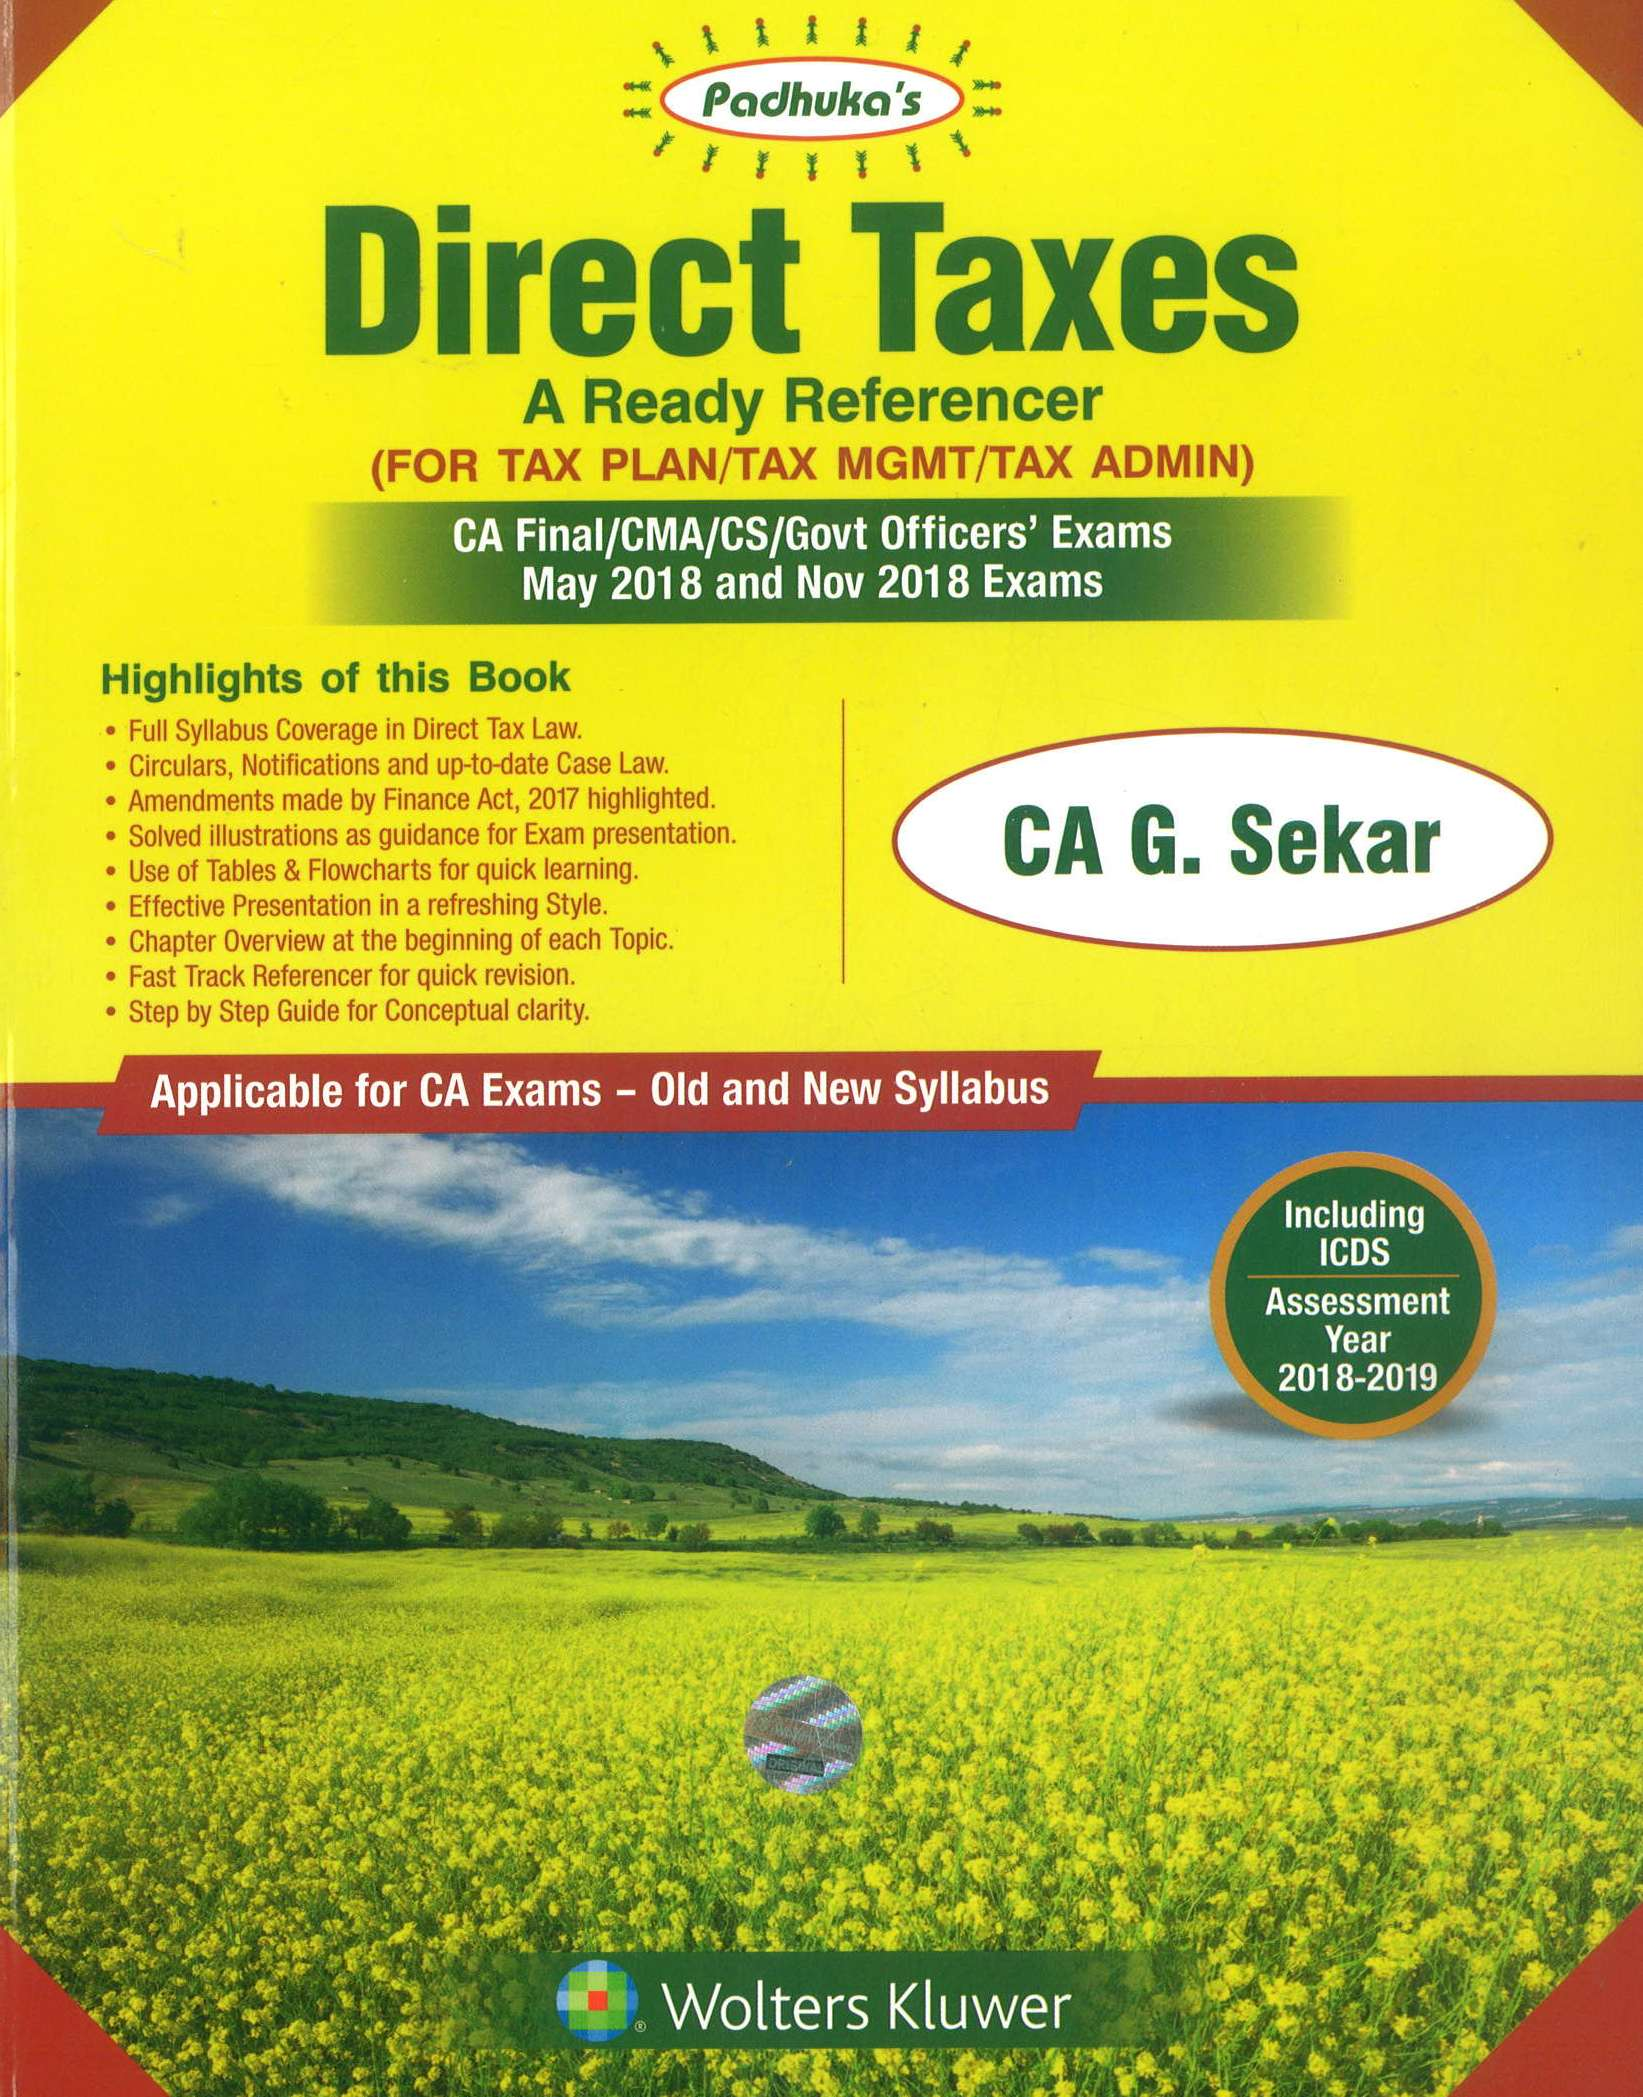 Padhuka Direct Taxes A ready Reference for CA Final for May/Nov 2018 Exam (Old & New Syllabus) by CA G. Sekar (Wolters Kluwer Publishing) Edition 19th June 2018